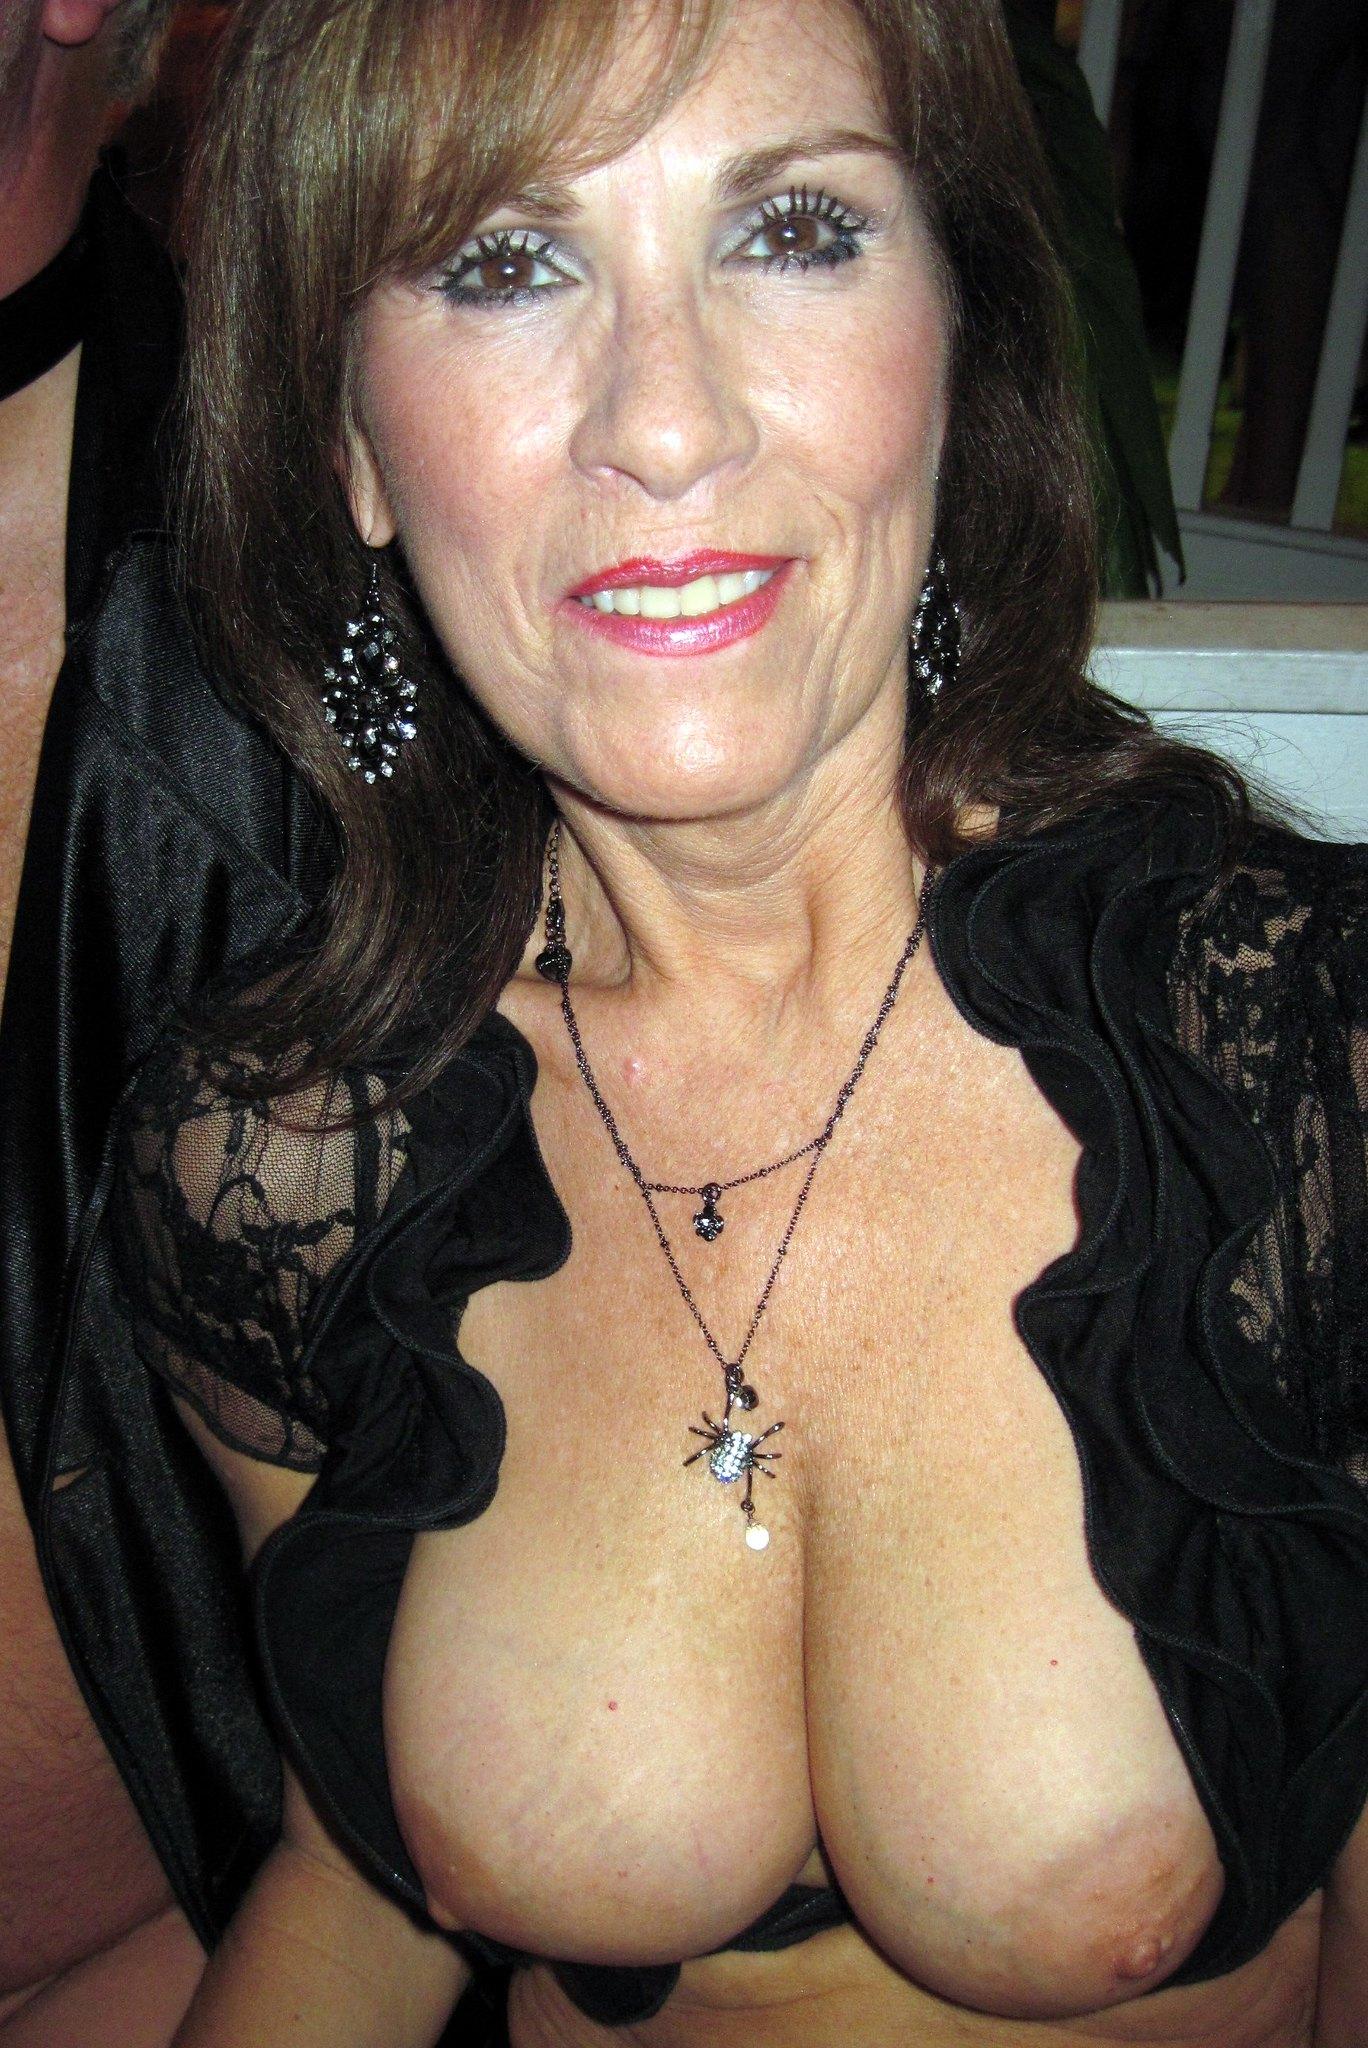 Milf cleavage tumblr-1678